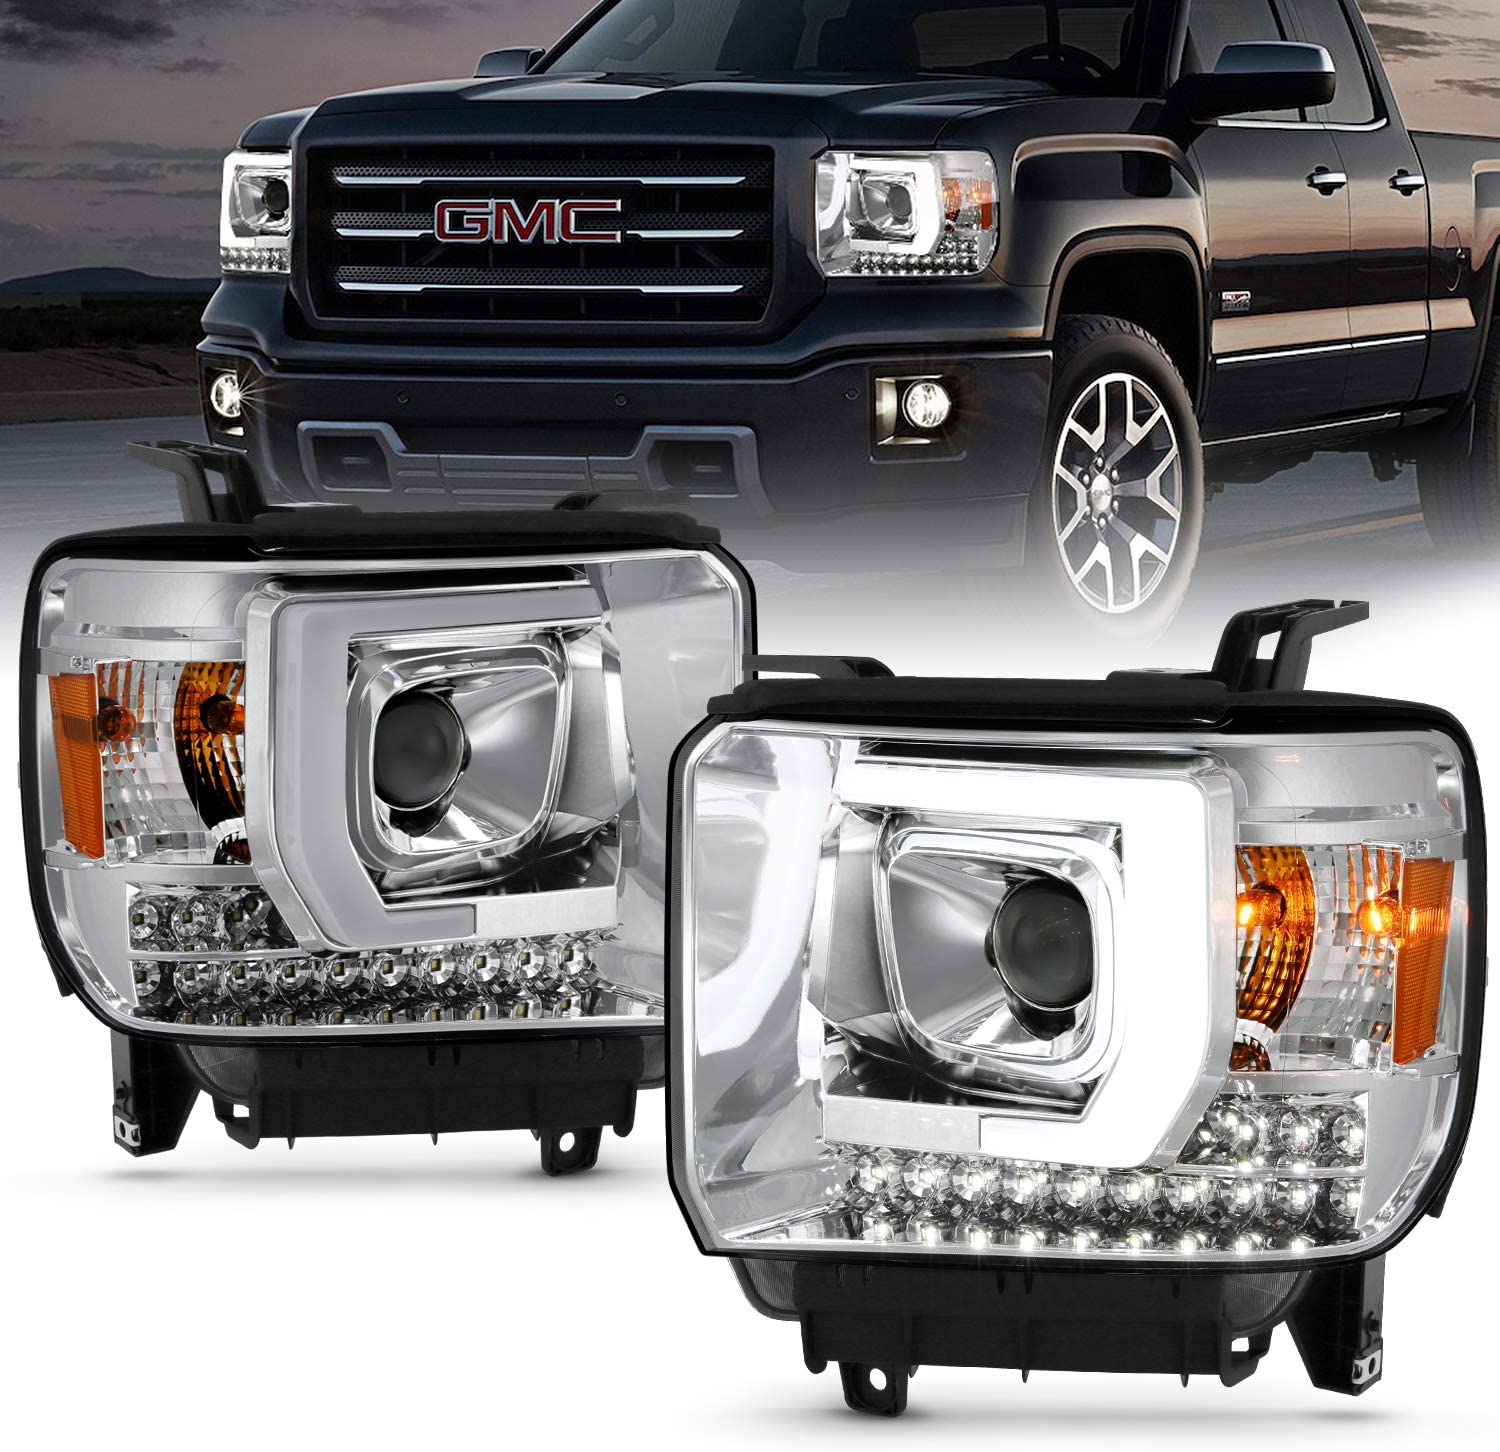 amazon com amerilite chrome projector headlights led drl bar for gmc sierra 1500 2500hd 3500hd driver and passenger pair automotive amerilite chrome projector headlights led drl bar for gmc sierra 1500 2500hd 3500hd driver and passenger pair